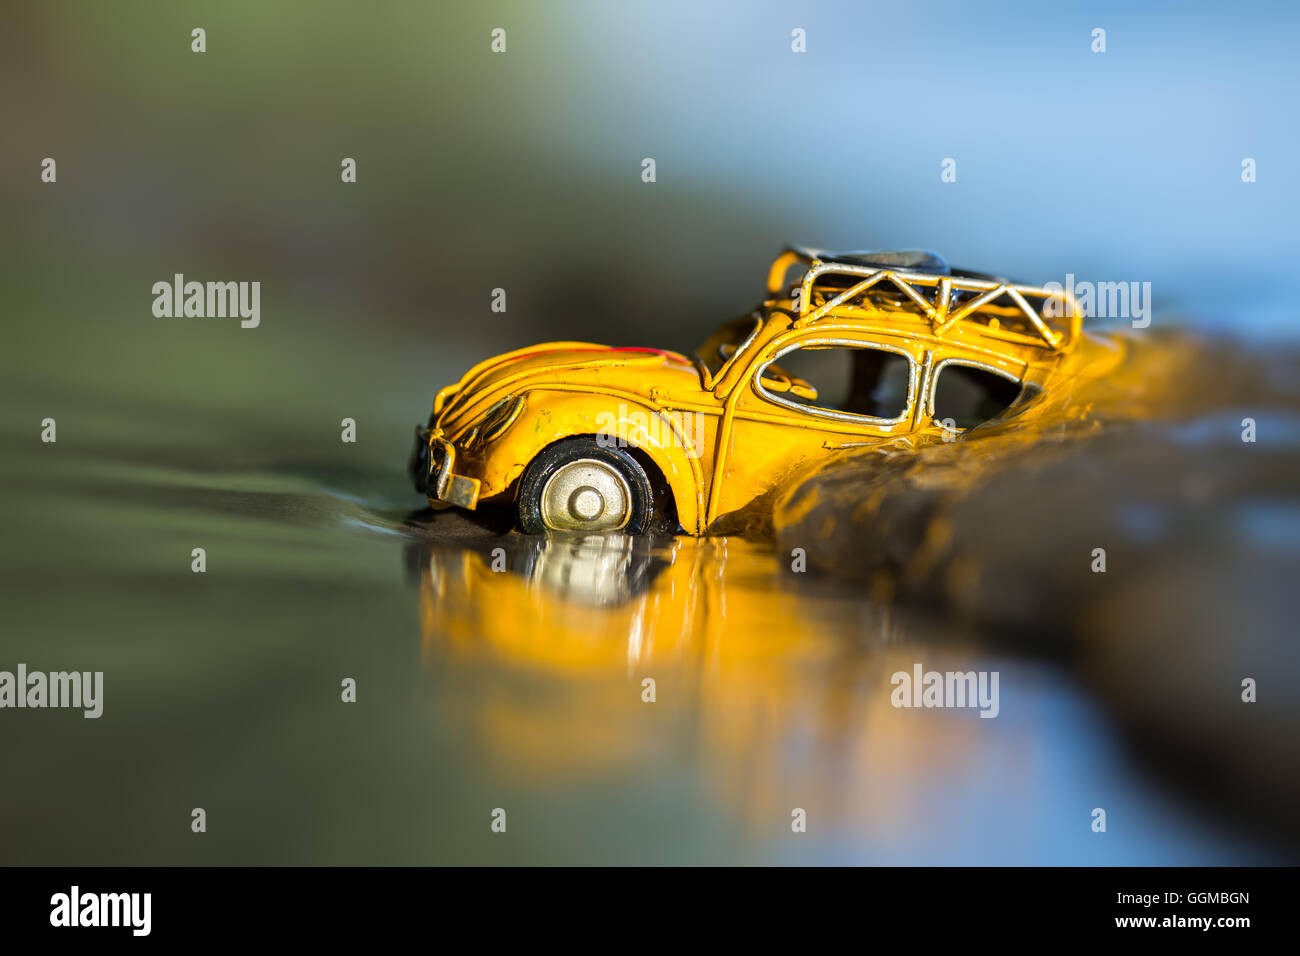 Ocean Travel Background Petite En Voiture Jouet Jaune Concept F1JTlKc3